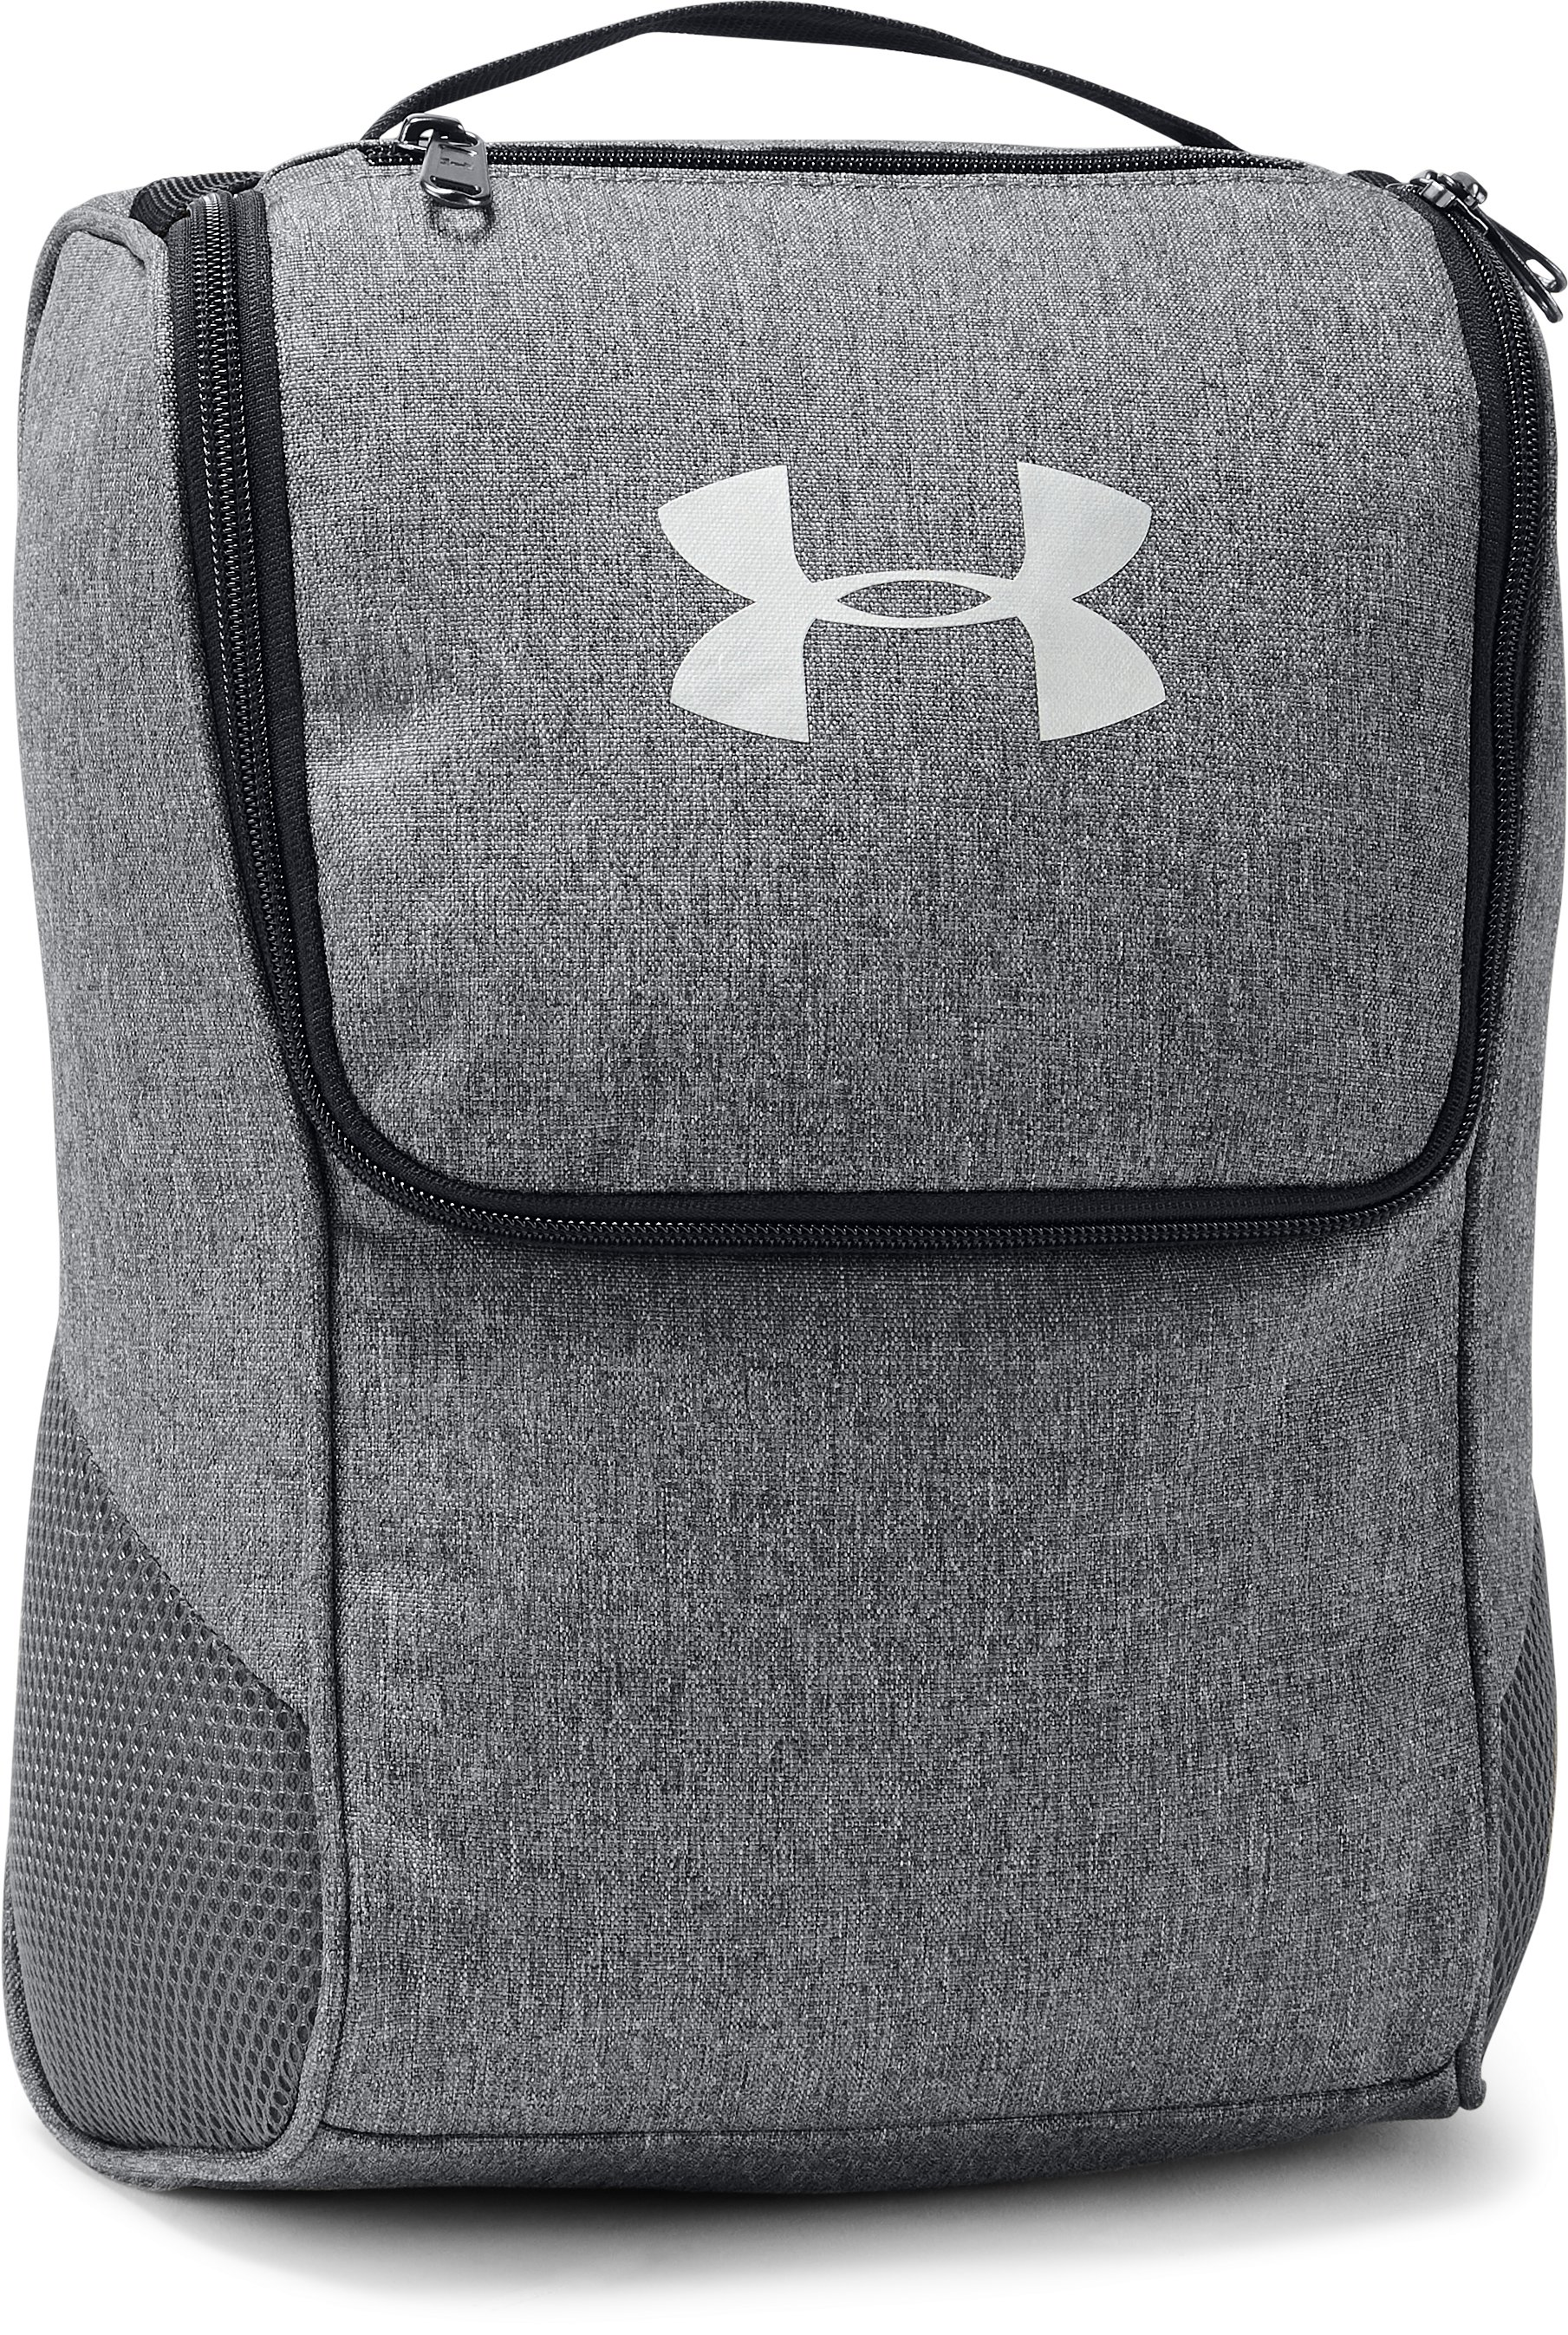 UA Shoe Bag, GRAPHITE MEDIUM HEATHER, zoomed